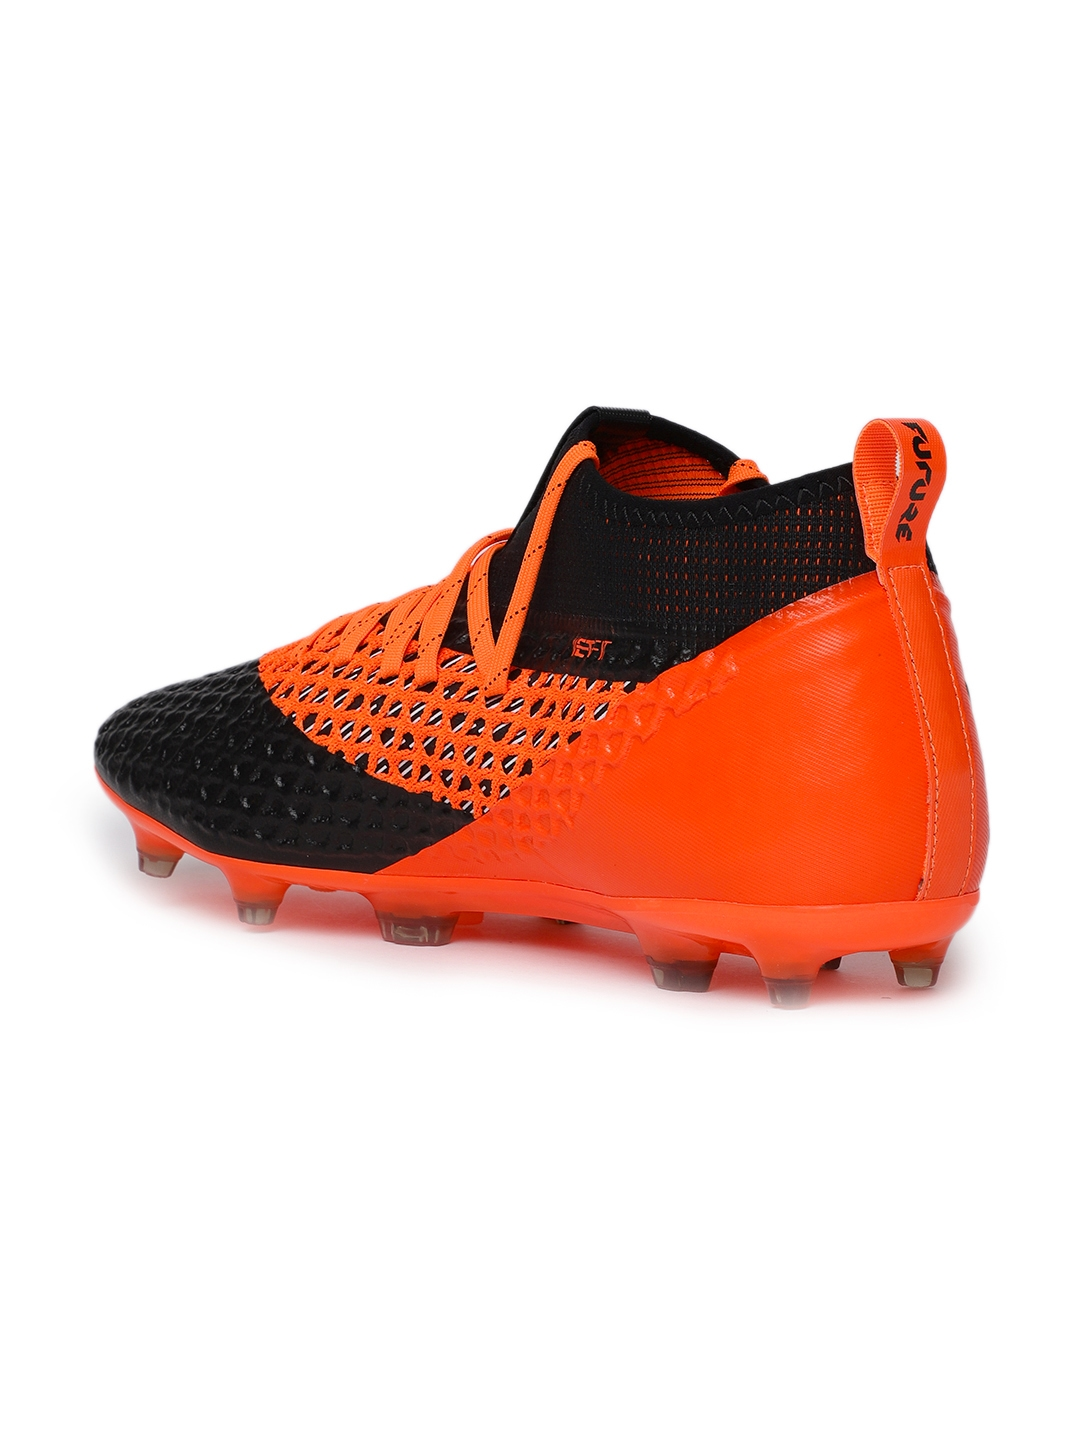 259e49f2cbe4 Buy Puma Men Orange   Black FUTURE 2.2 NETFIT FG AG Football Shoes ...